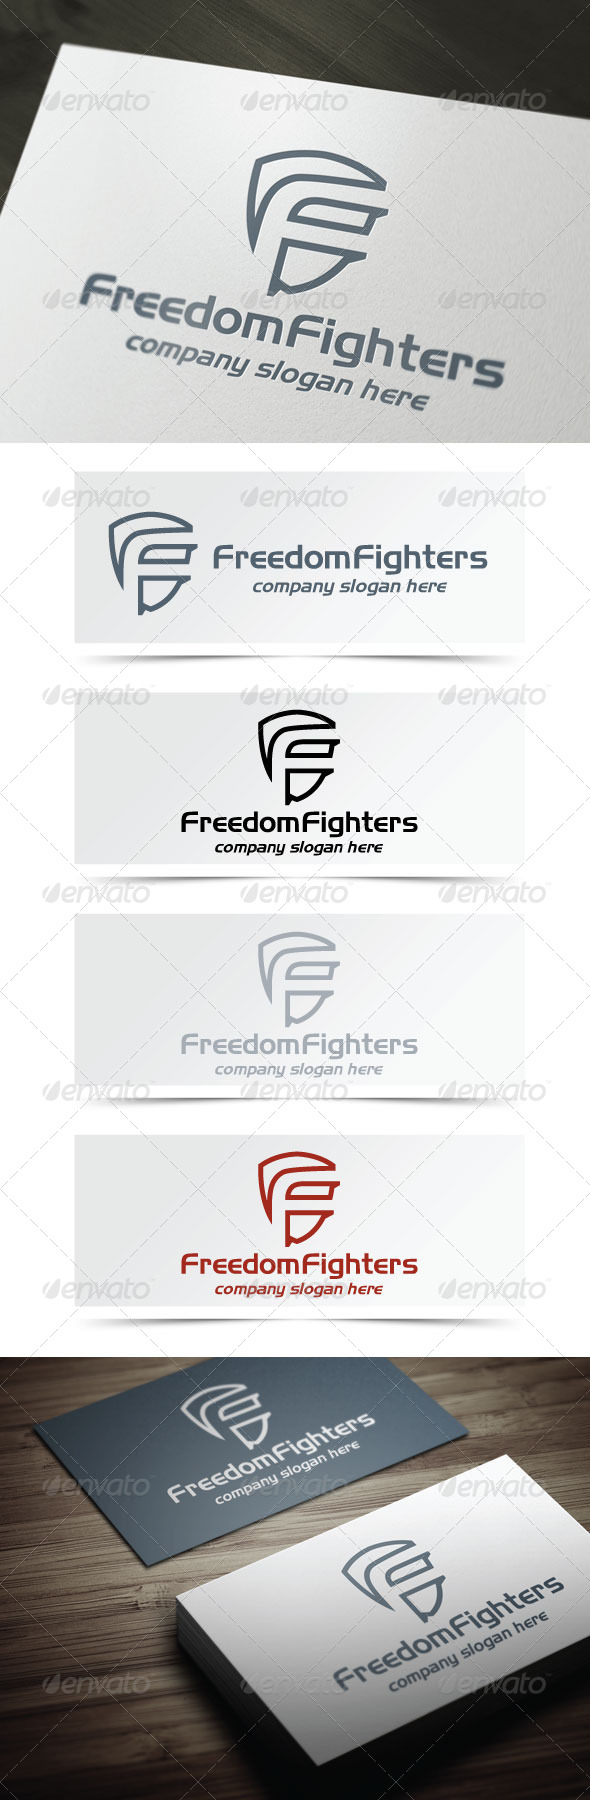 GraphicRiver Freedom Fighters 4623563